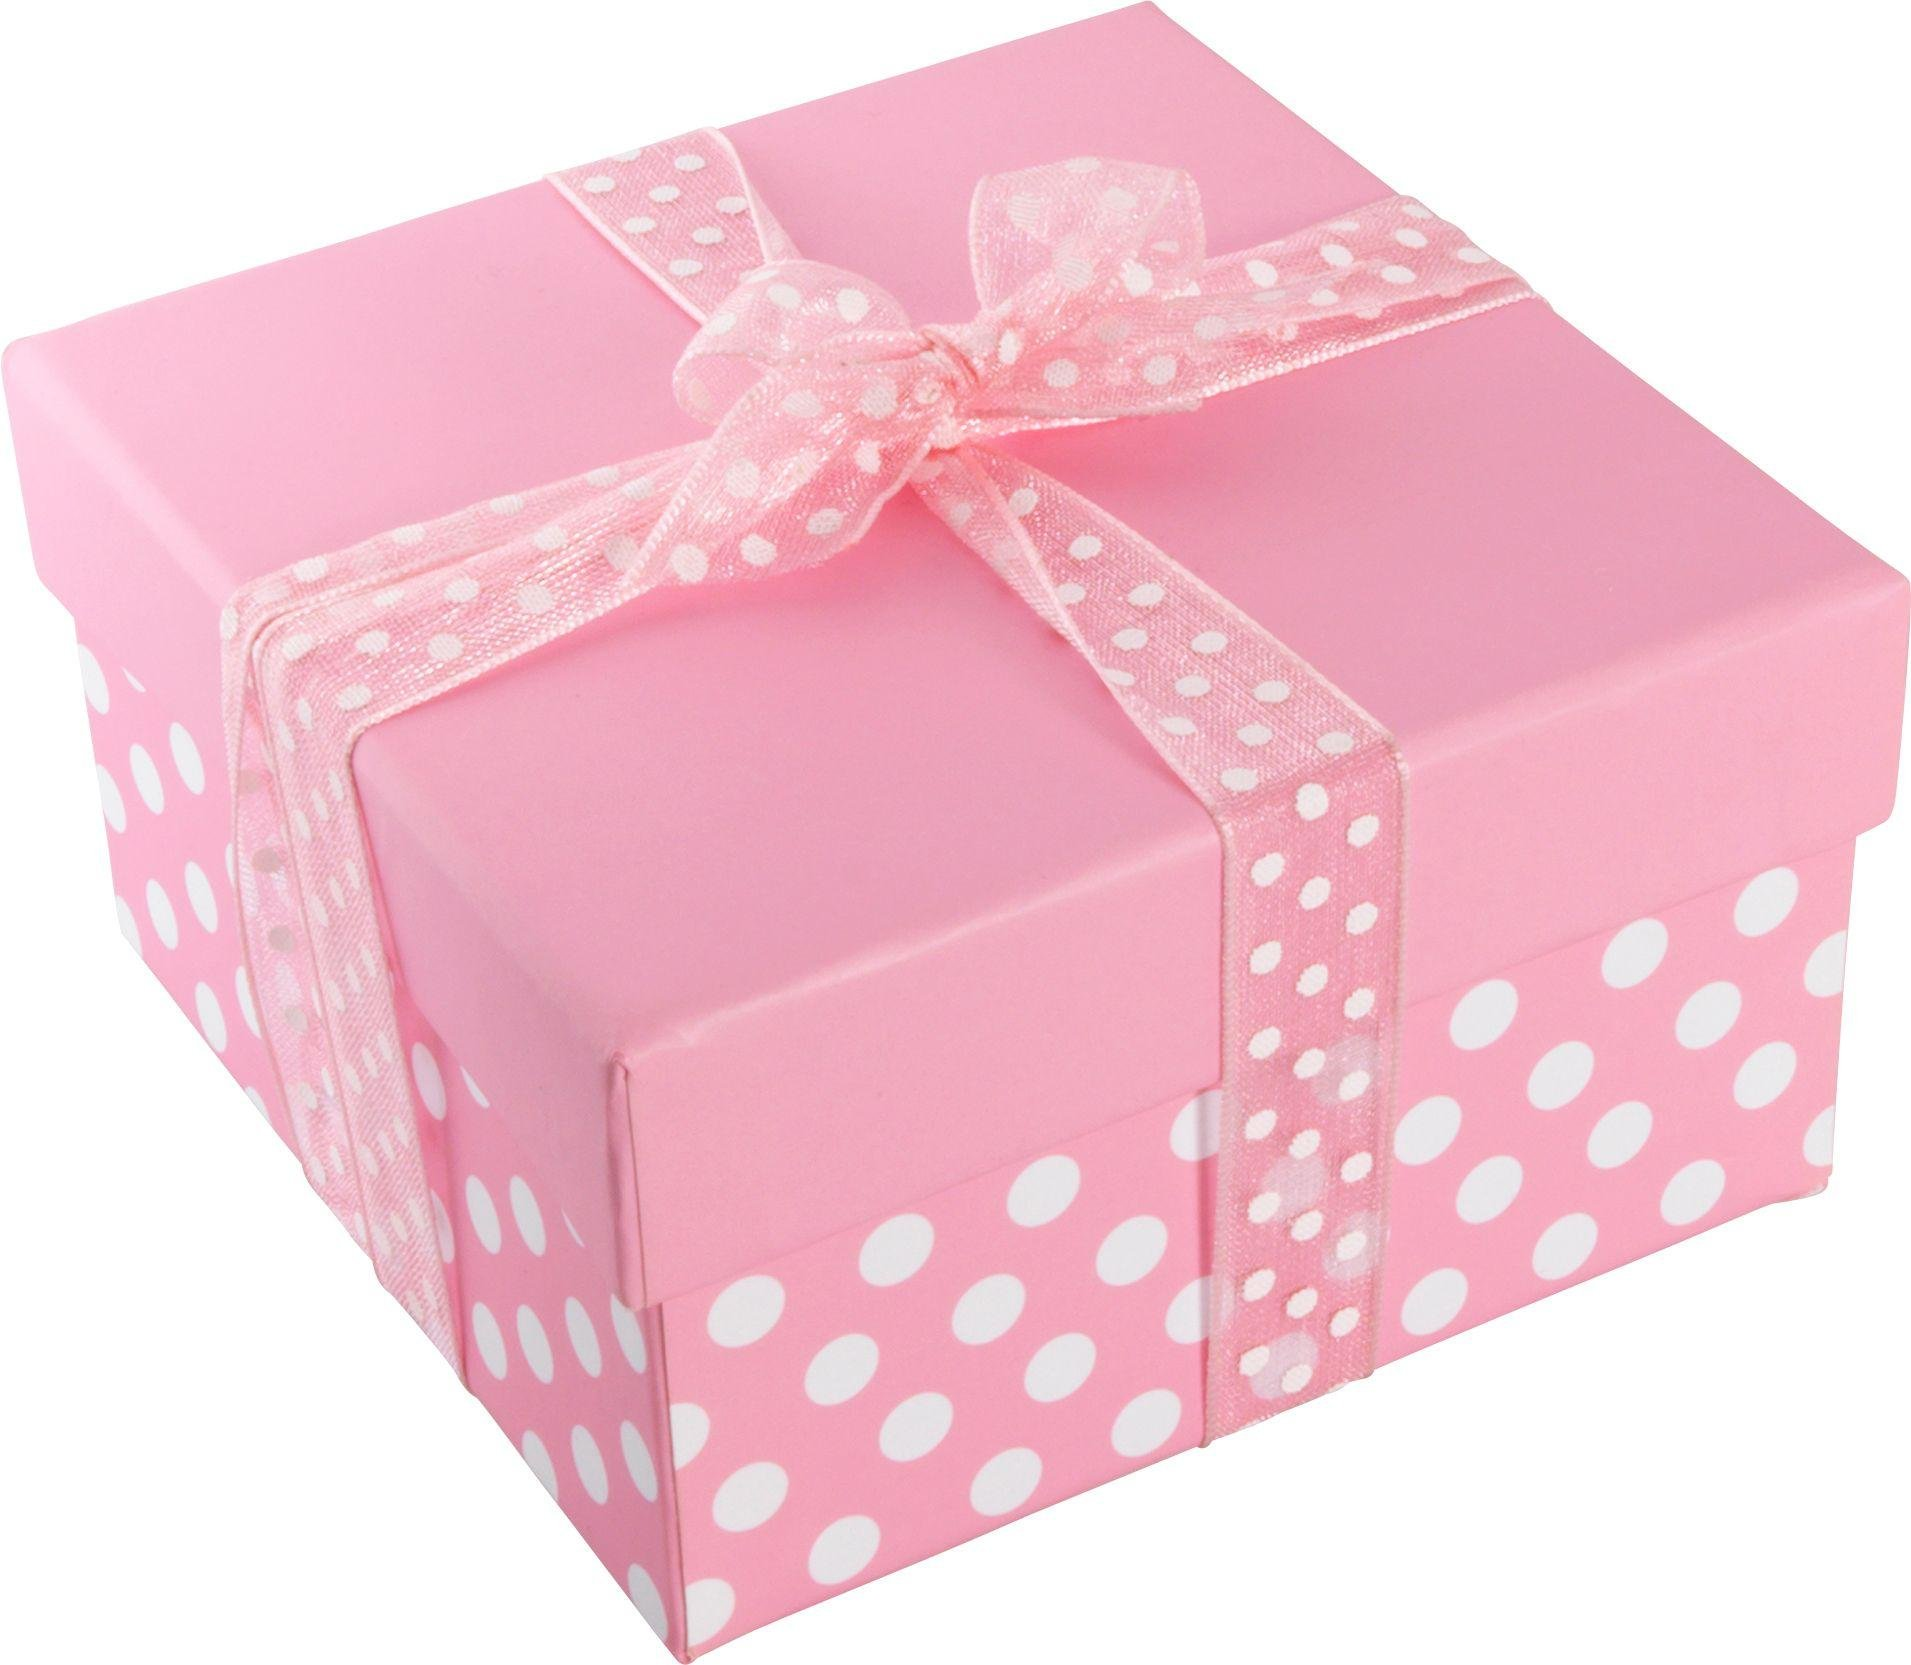 Argos - Children's - Jewellery Box - Pink